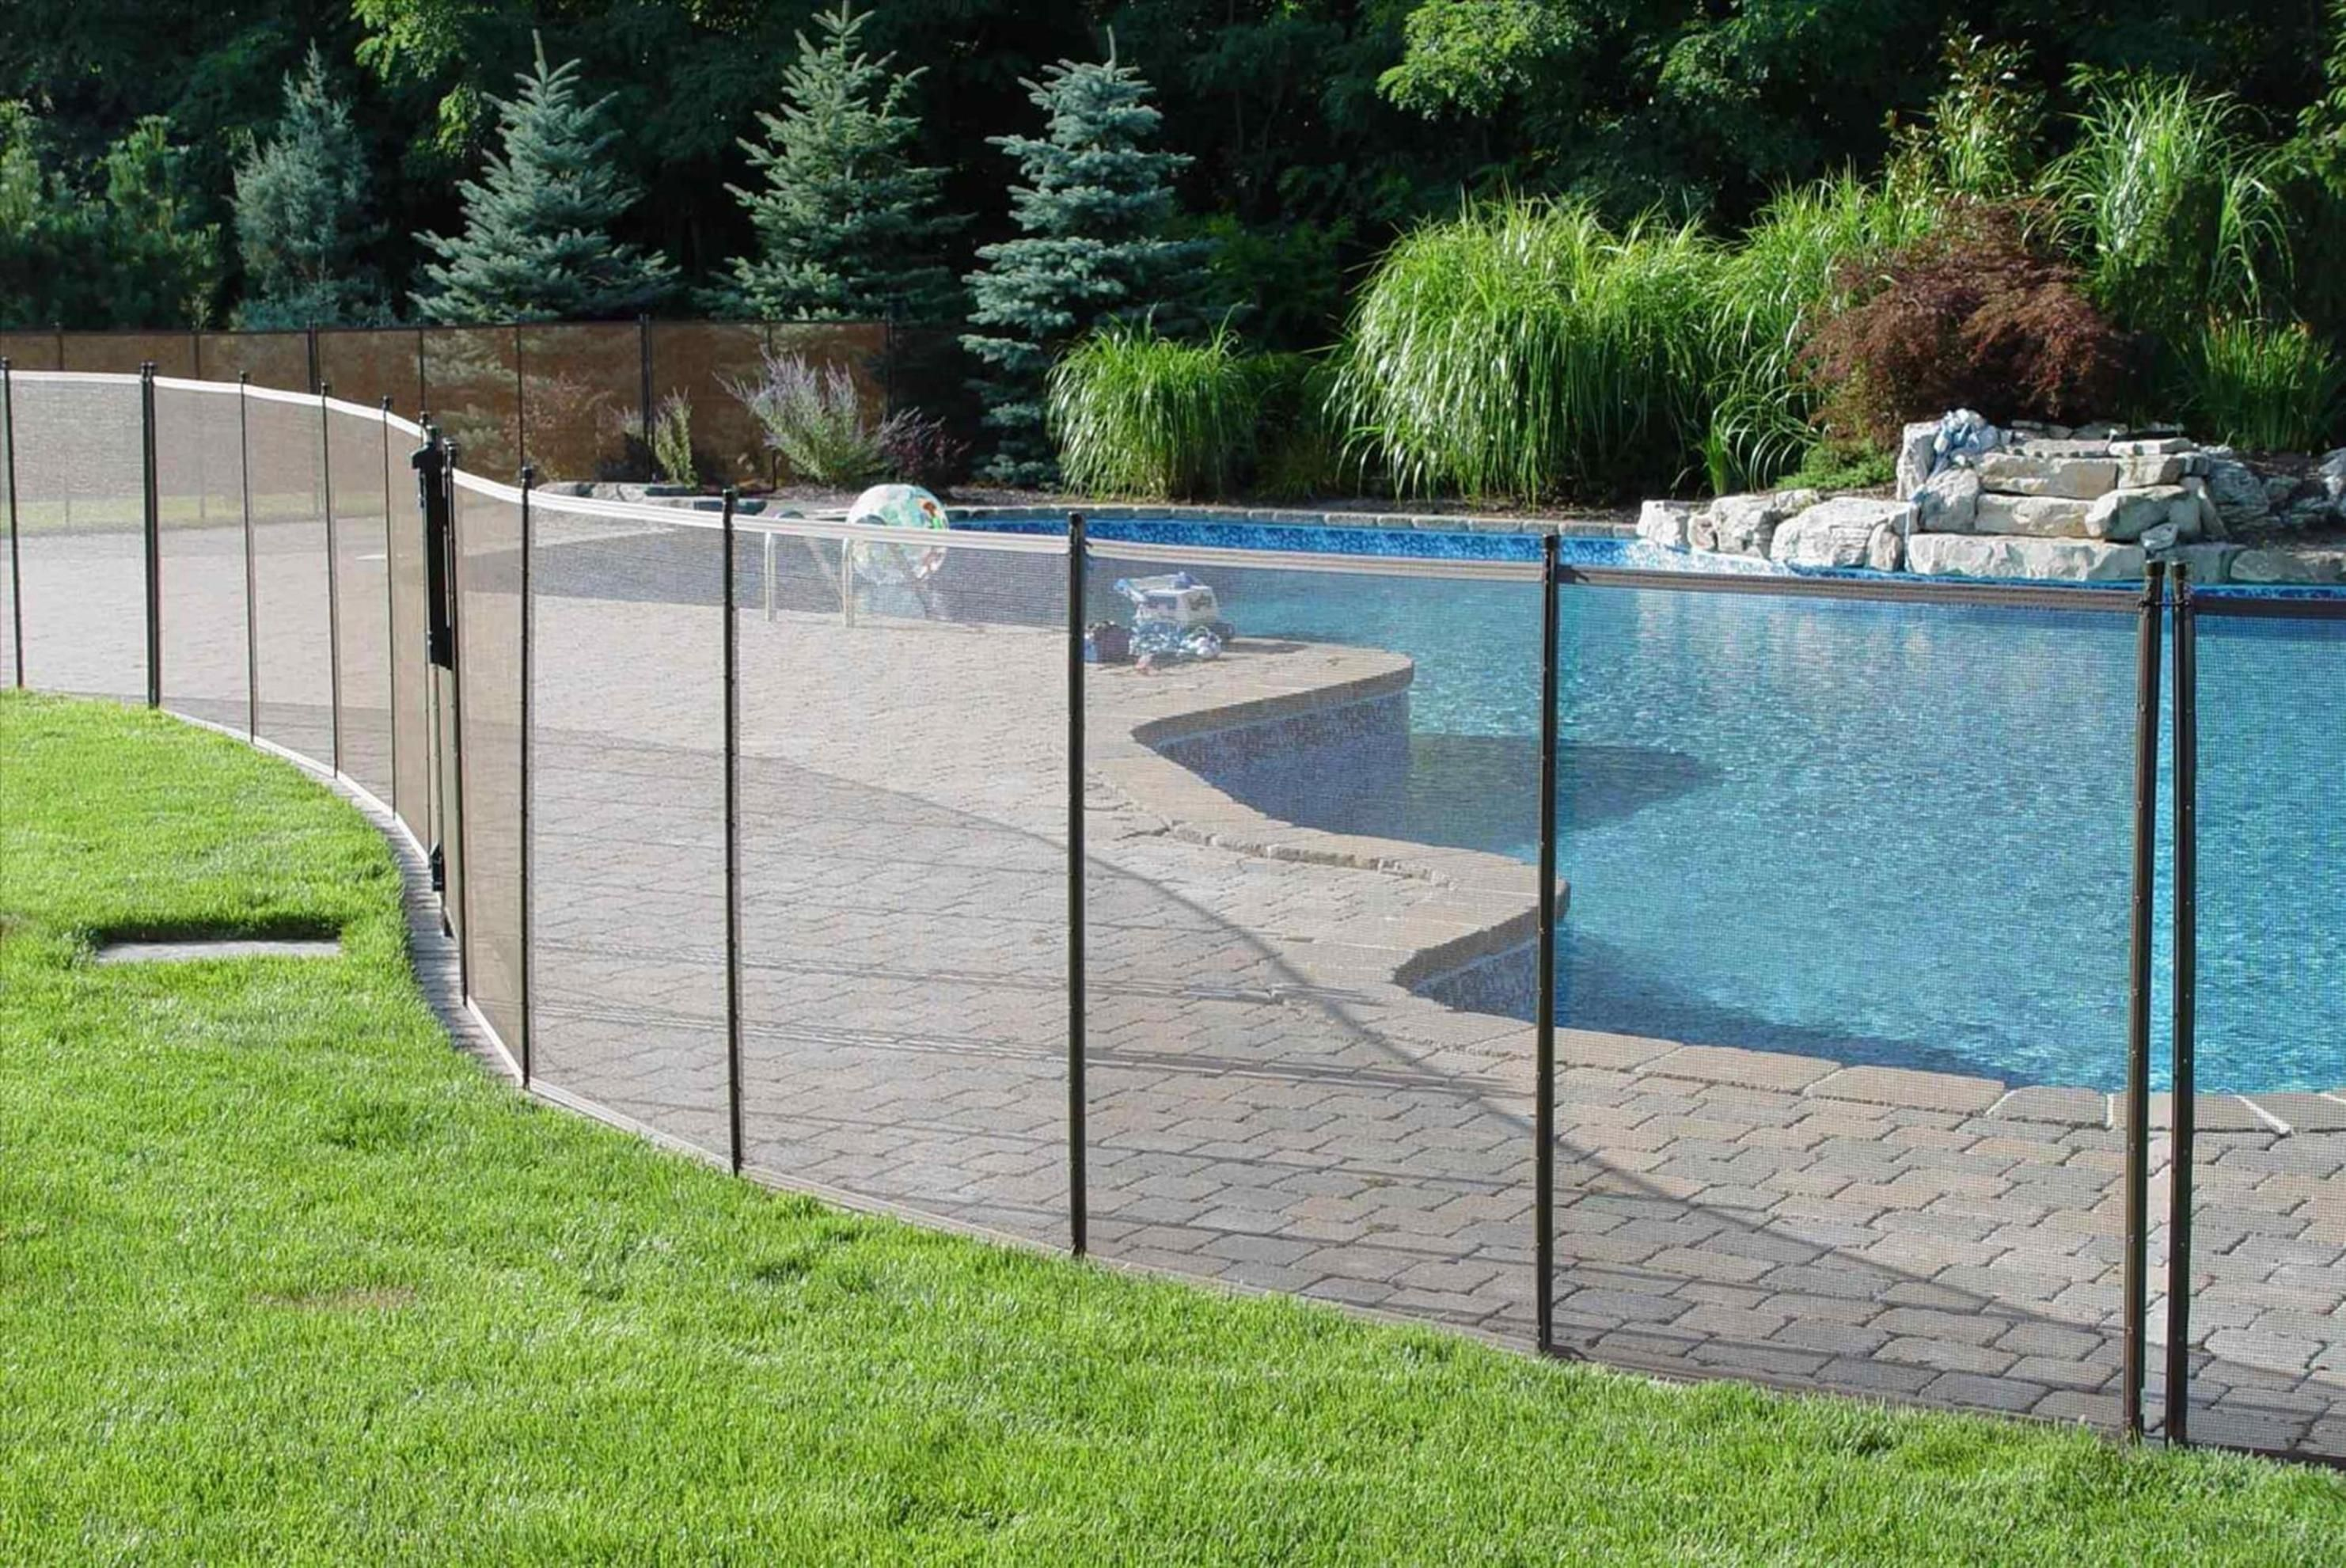 20 Inexpensive Temporary Fencing Ideas For Your Home 5 Mesh Pool Fence Backyard Fences Modern Fence